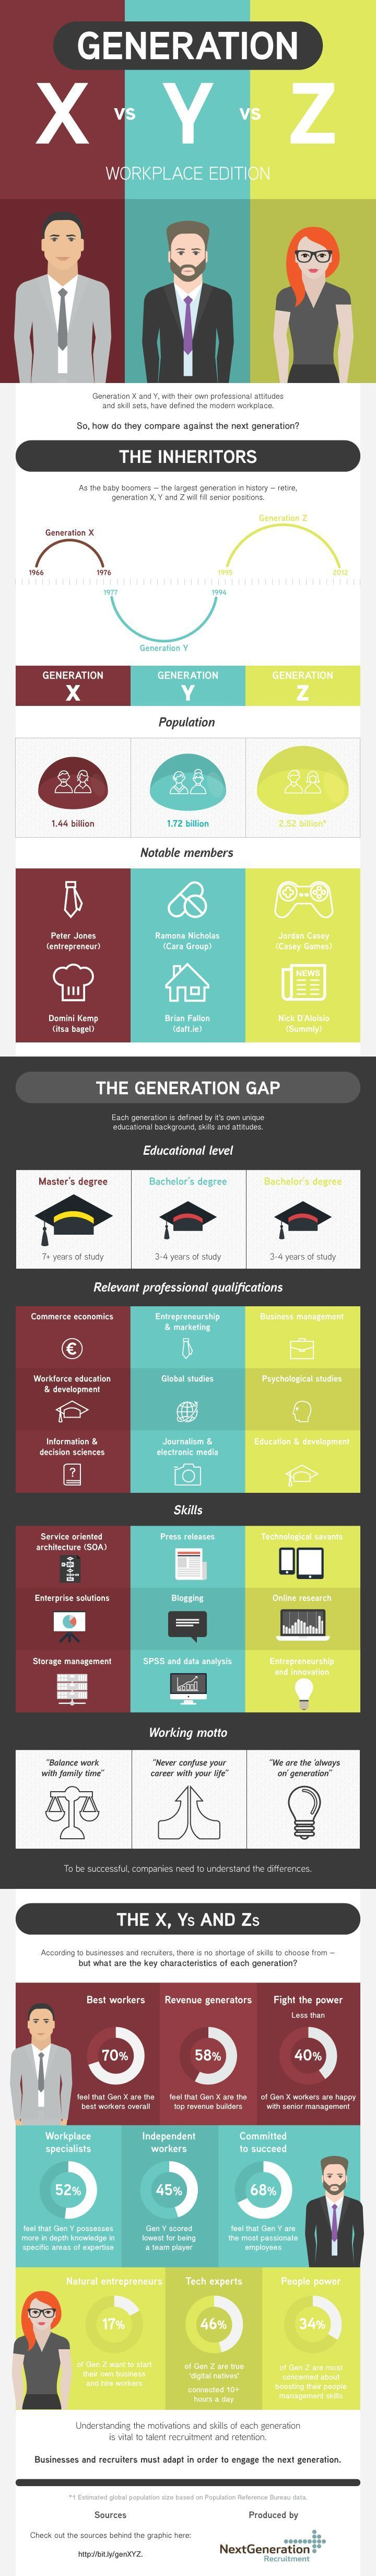 Generation X vs Y vs Z: Workplace Edition #infographic #Workplace #Career #Employees